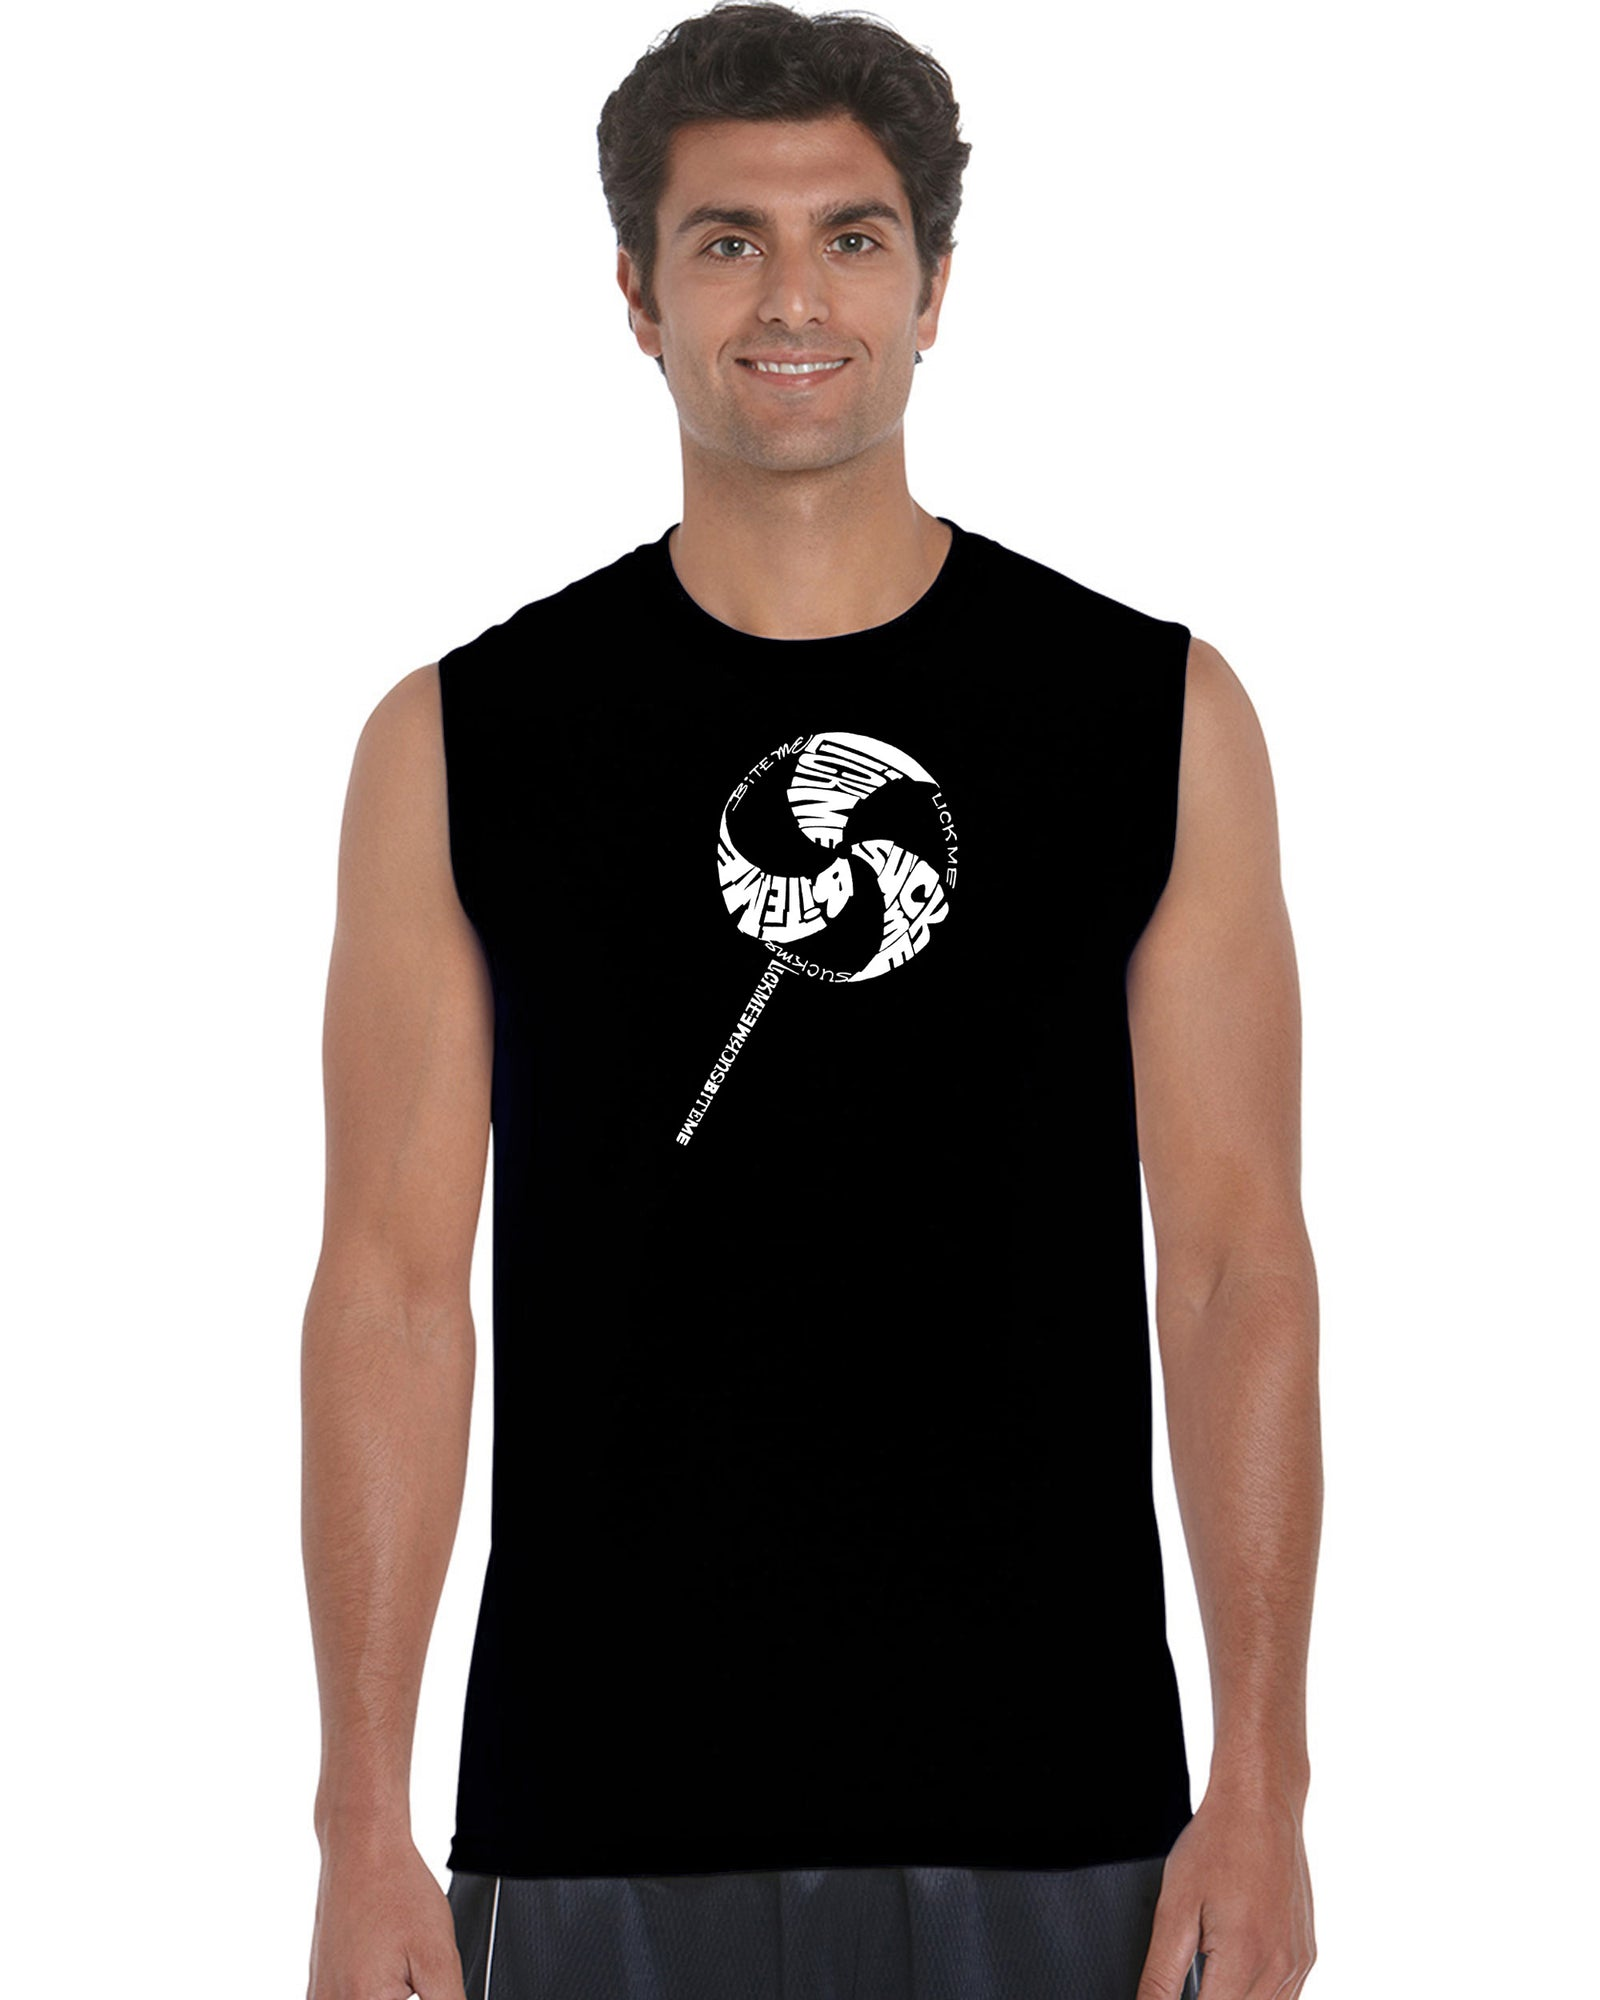 Men's Sleeveless T-shirt - Lollipop